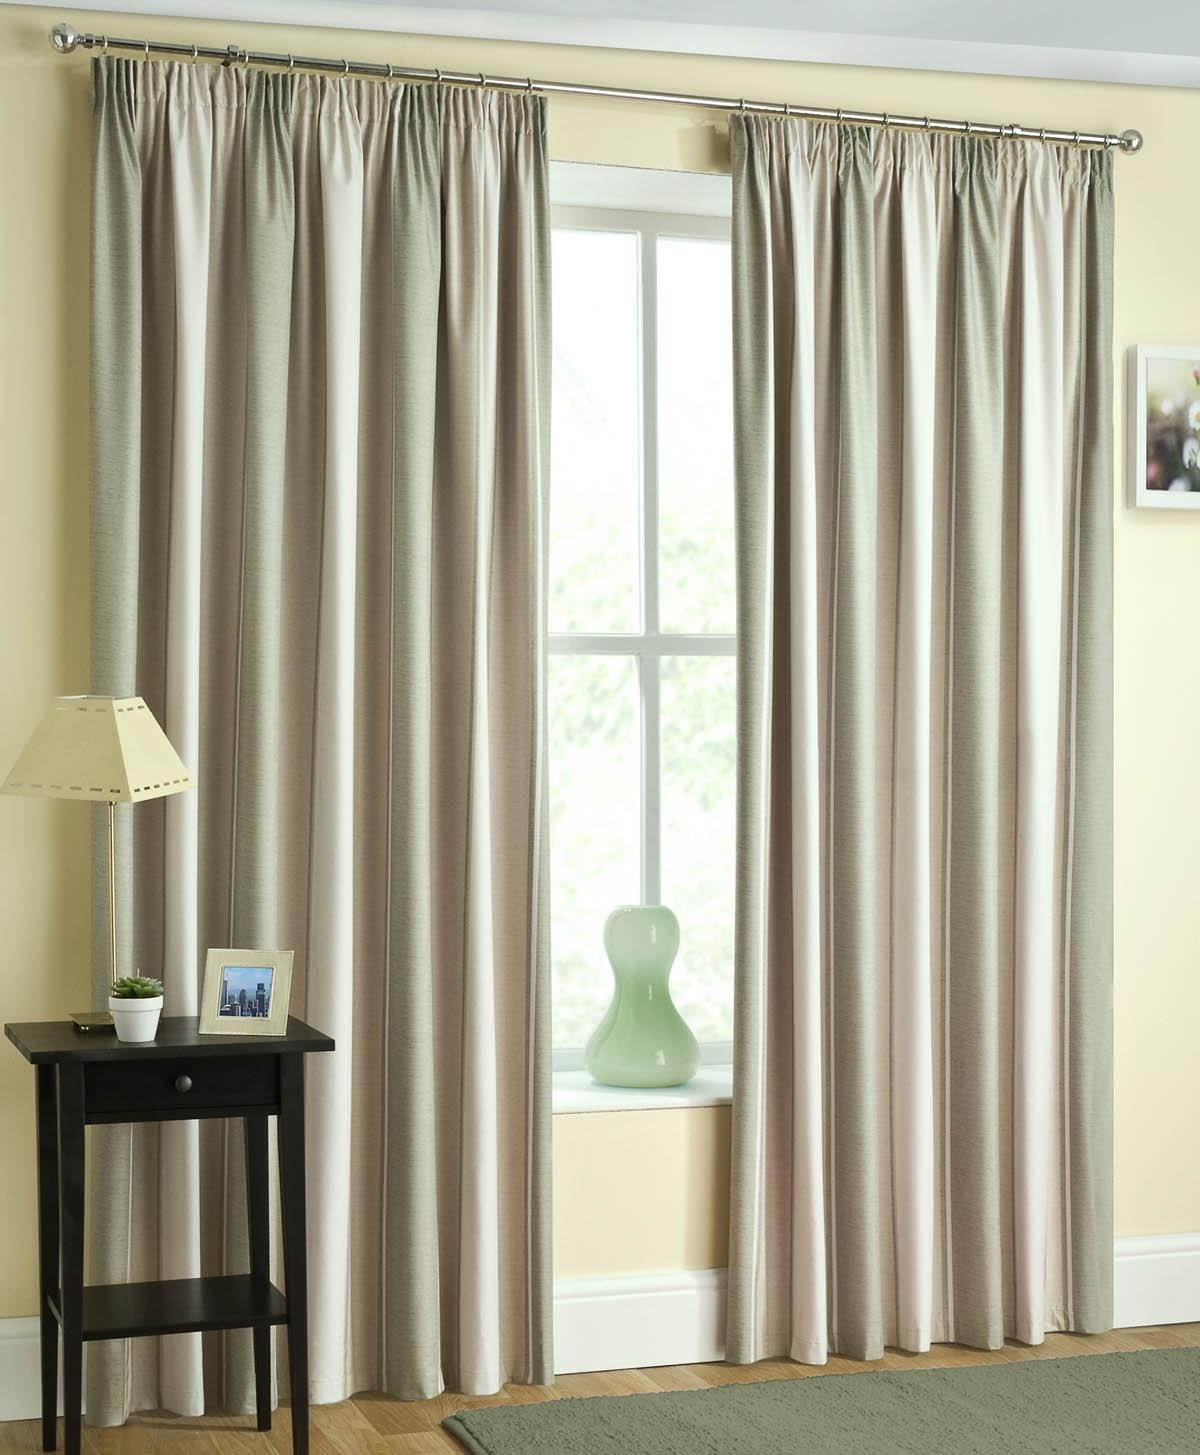 Featured Image of Green And Cream Striped Curtains